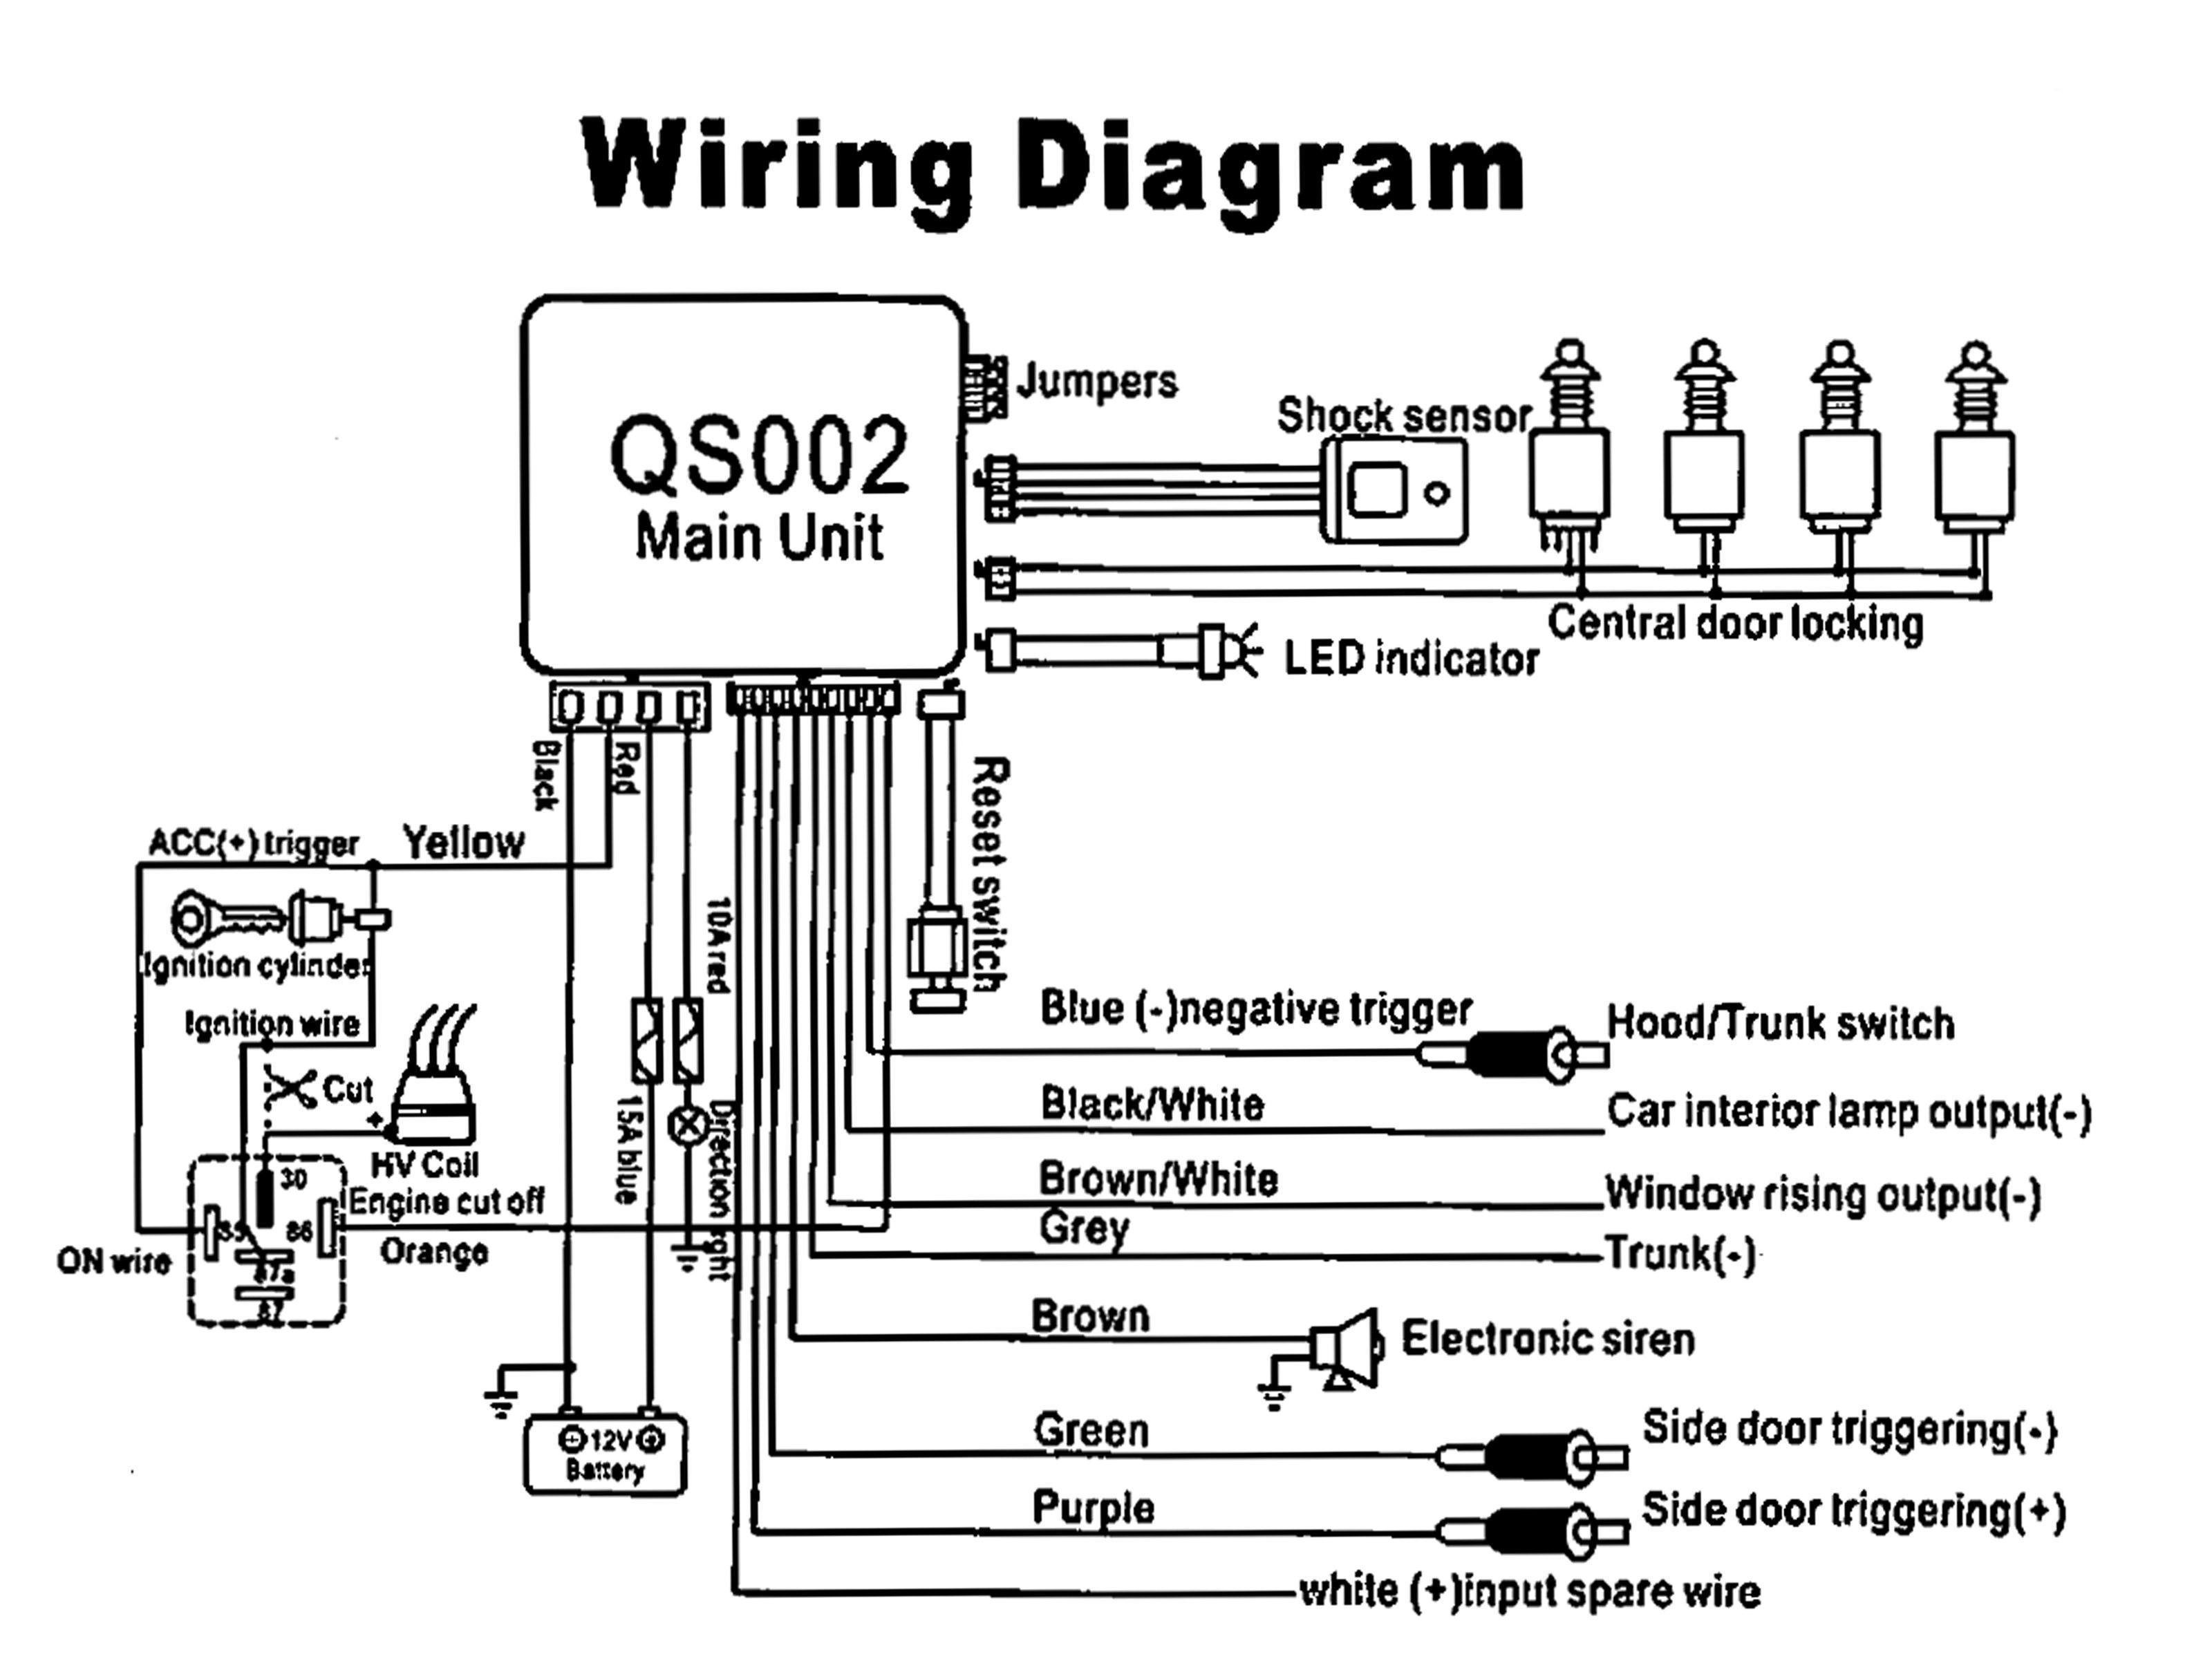 Fiat Alarm Wiring Diagram - Wiring Diagram & Cable Management on